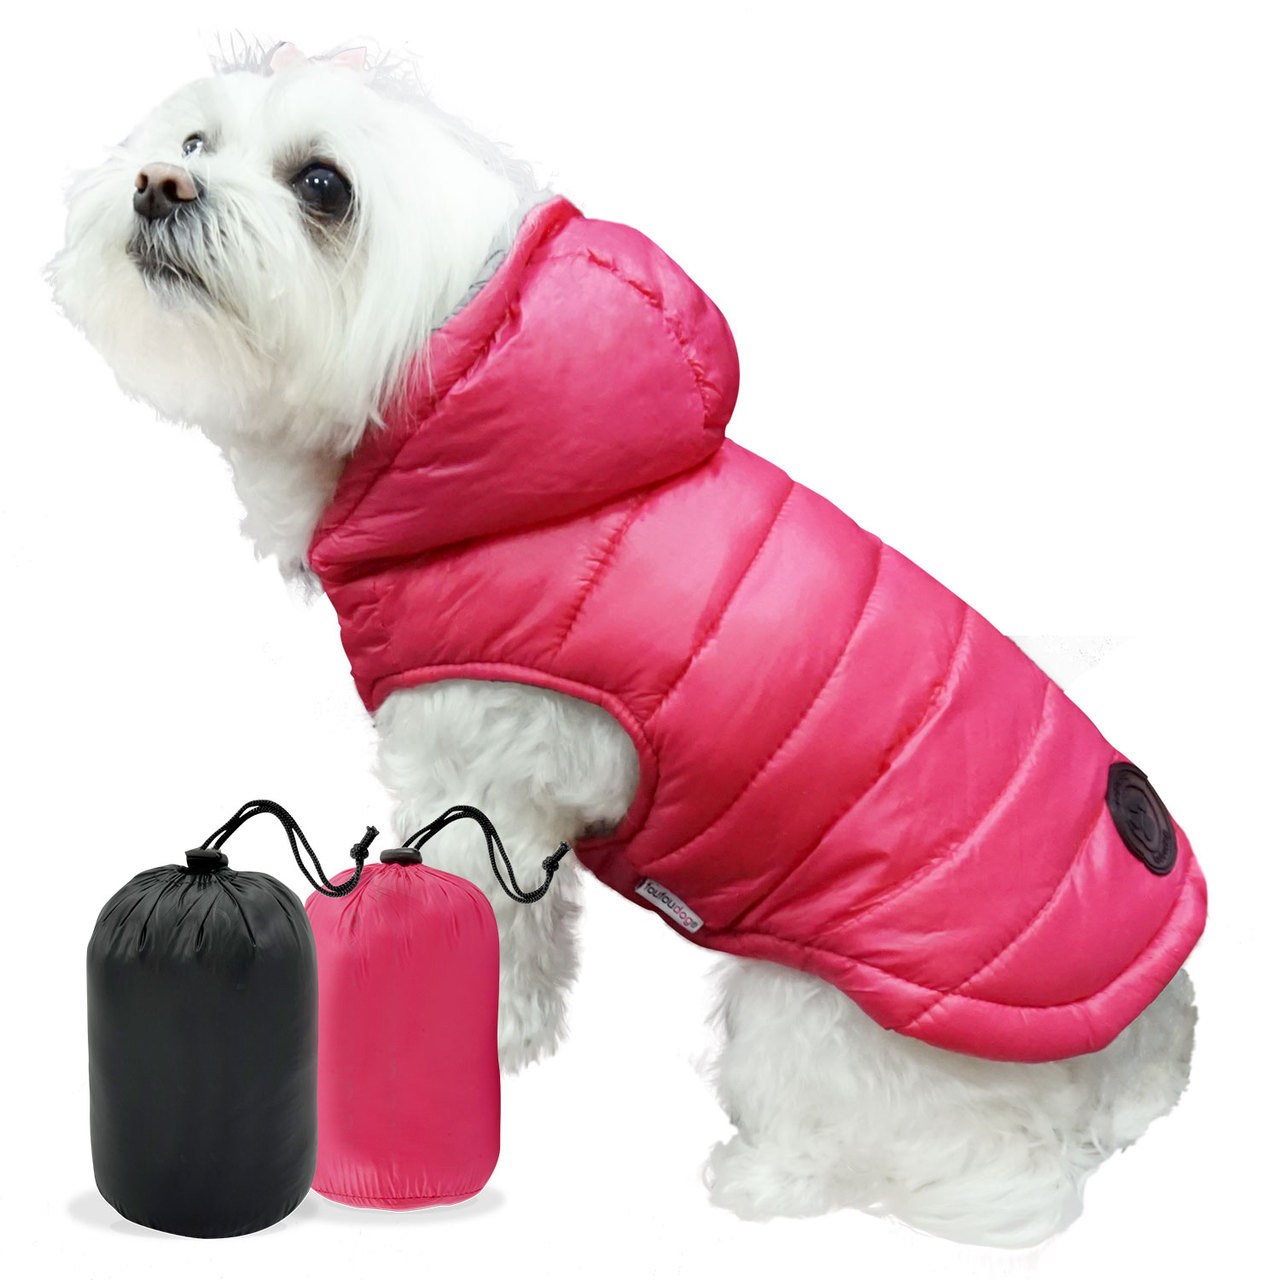 Best Dog Grooming Apparel